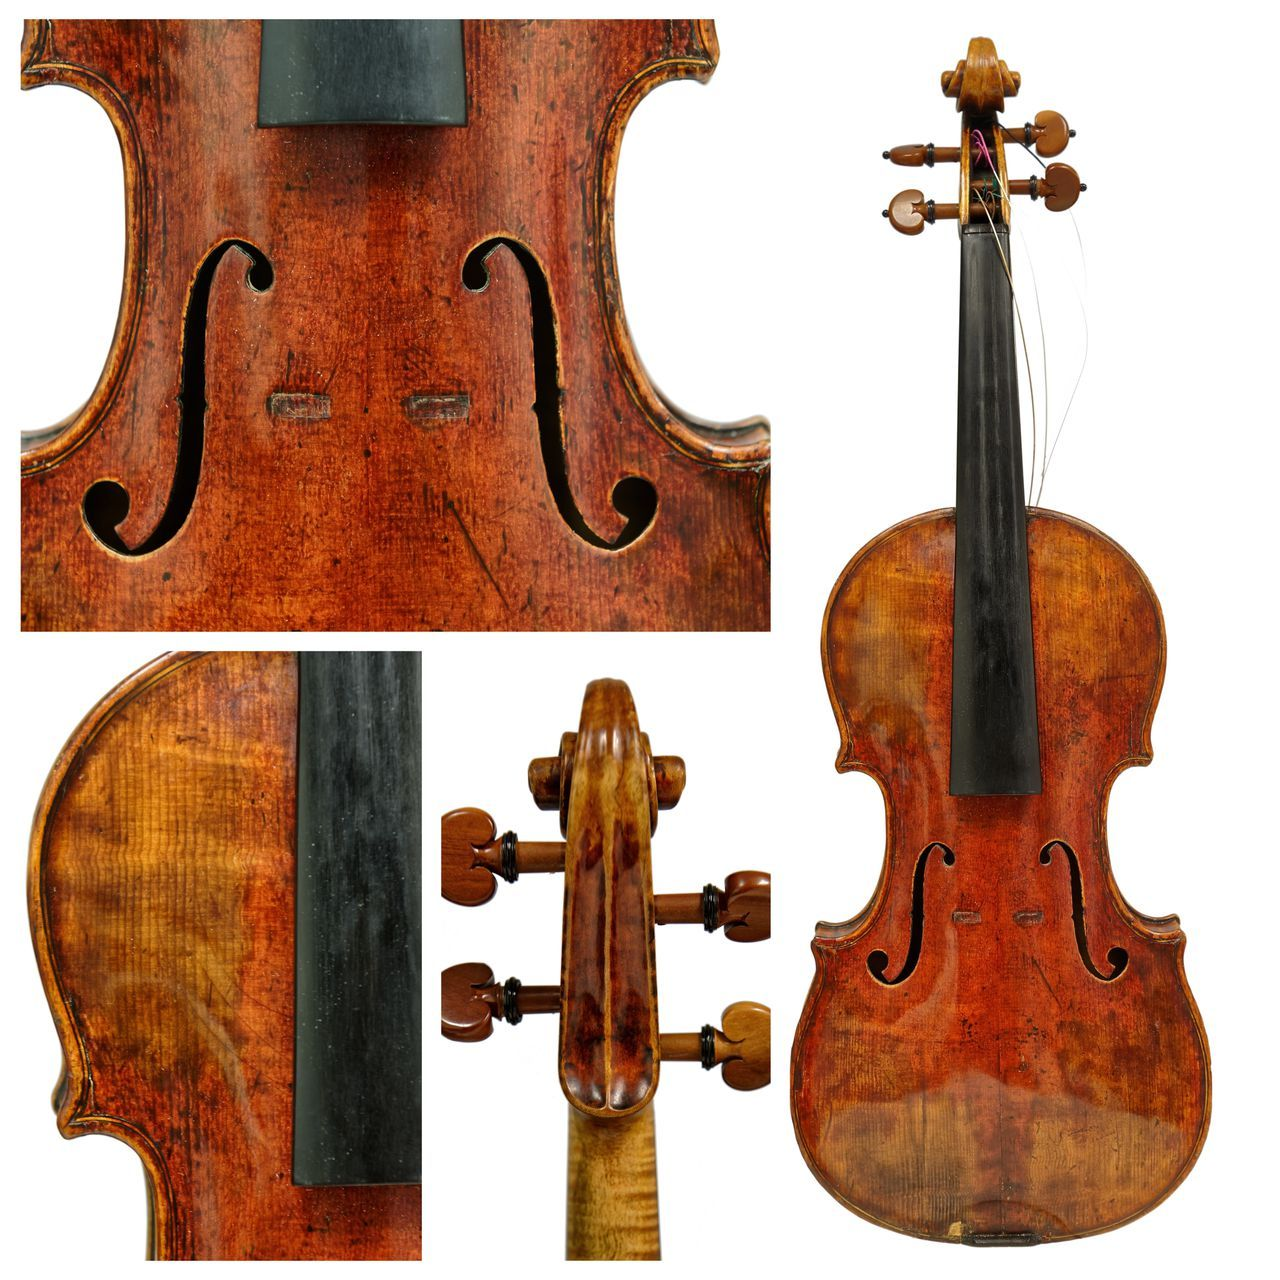 230 Musical Instruments Ideas In 2021 Musical Instruments Violin Instruments